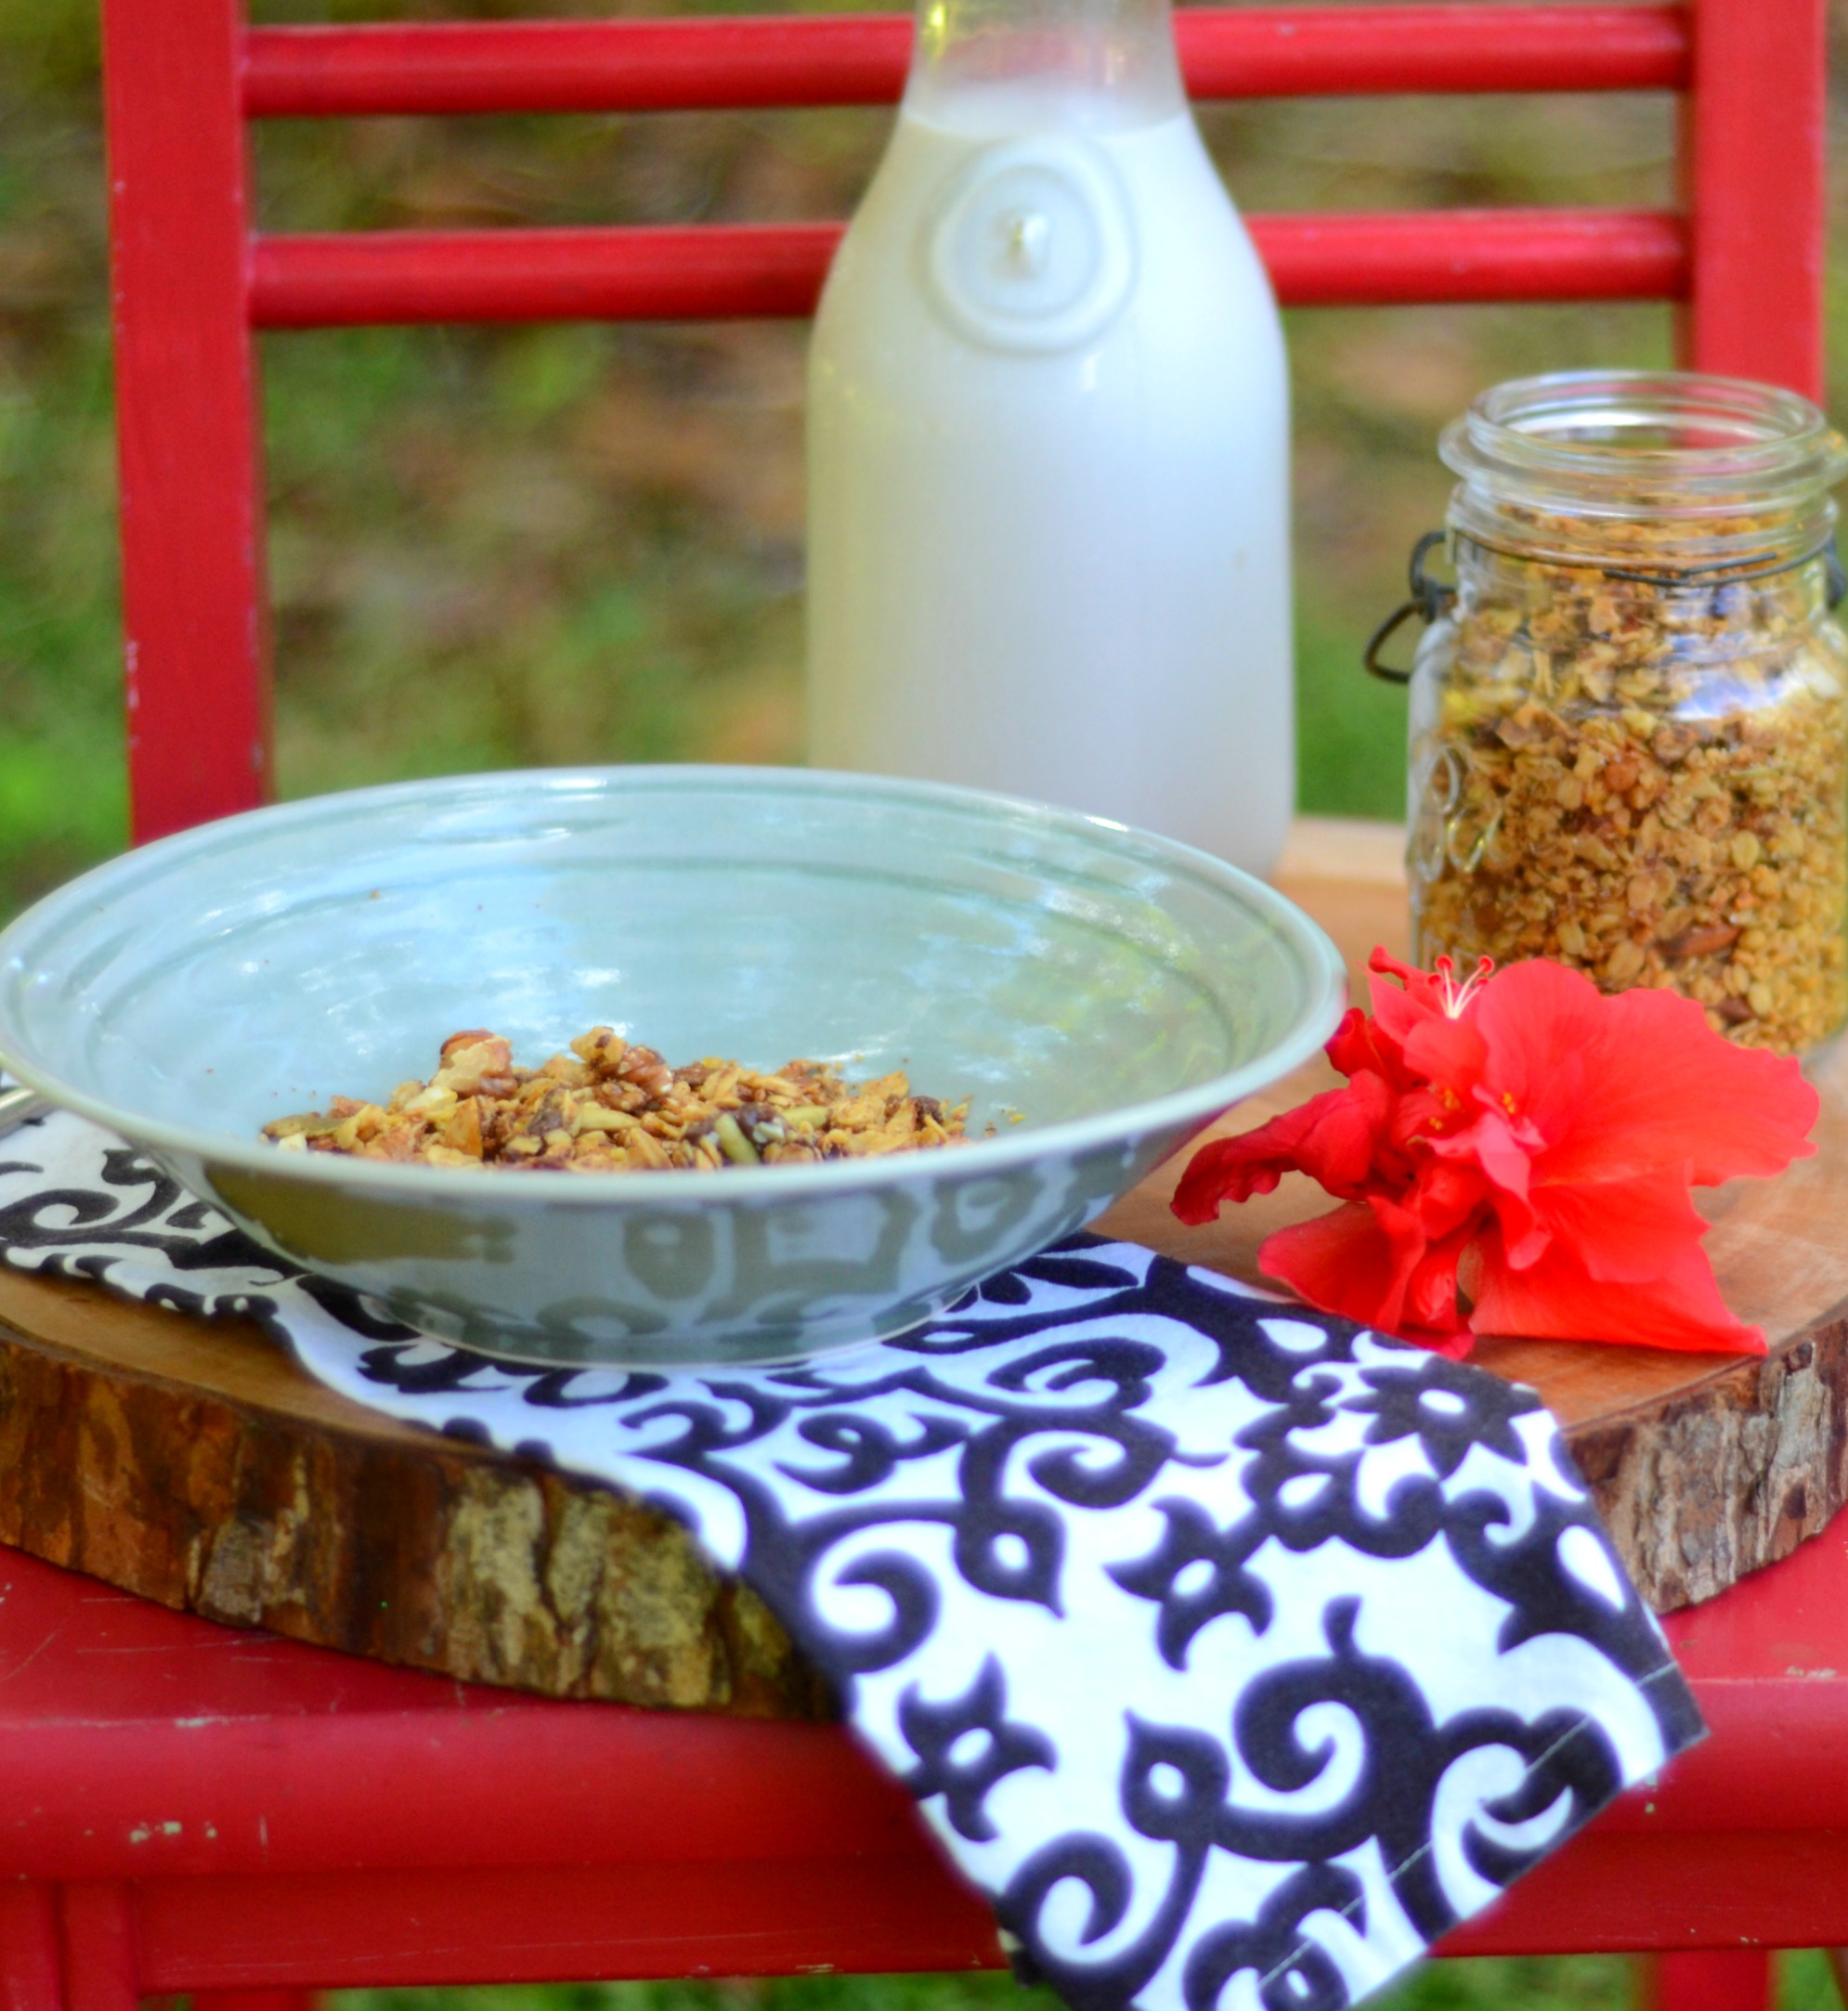 Cashew Butter and Chocolate Granola has to be one of our favorites. I make this at least once a week and it goes fast.   www.thesurferskitchen.com